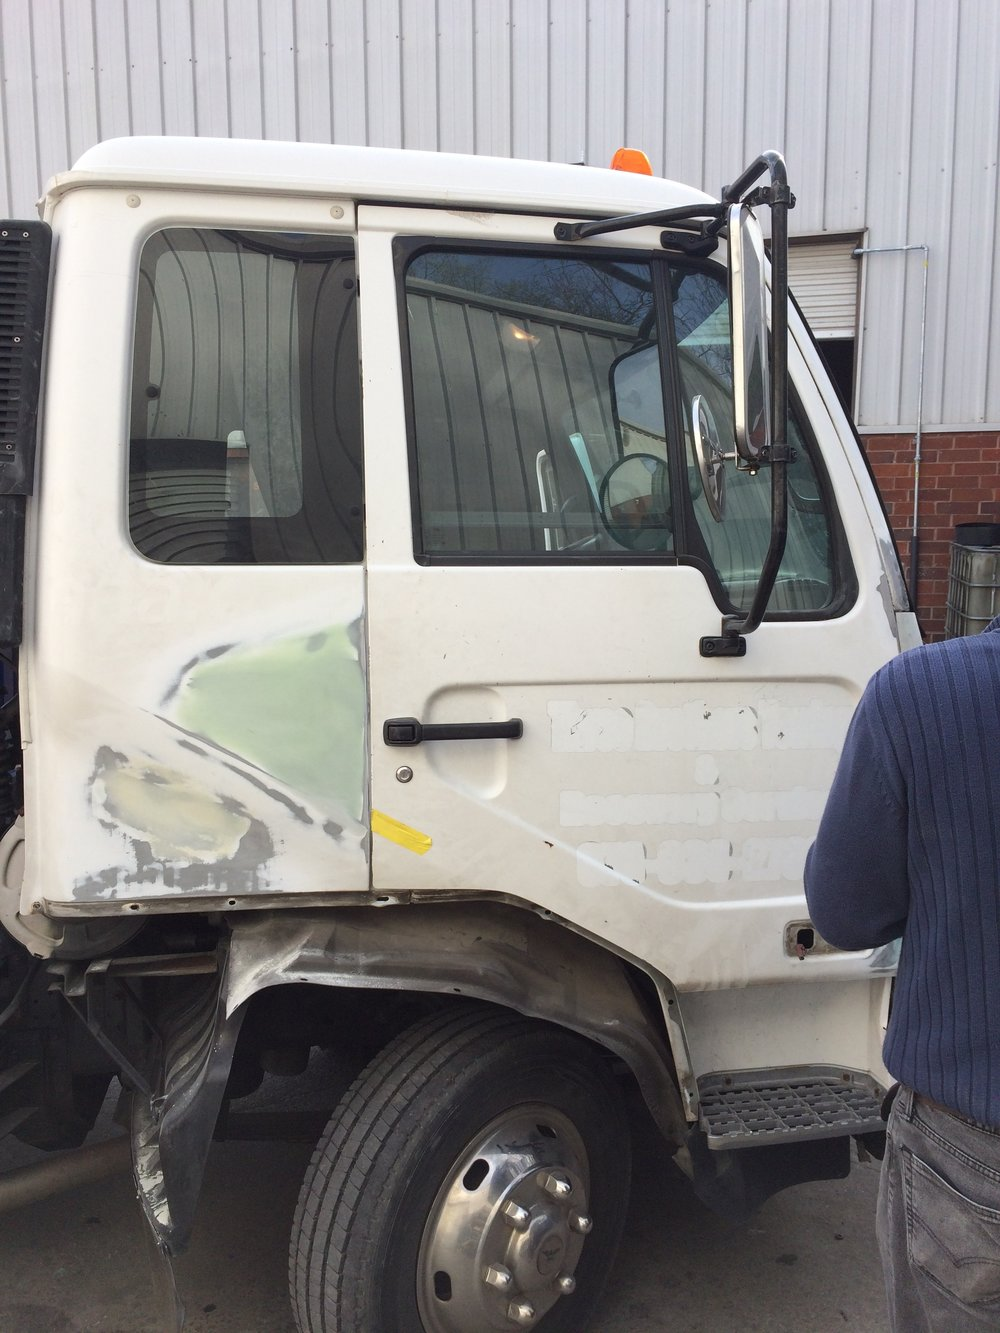 Damaged Tow Truck In for Repairs